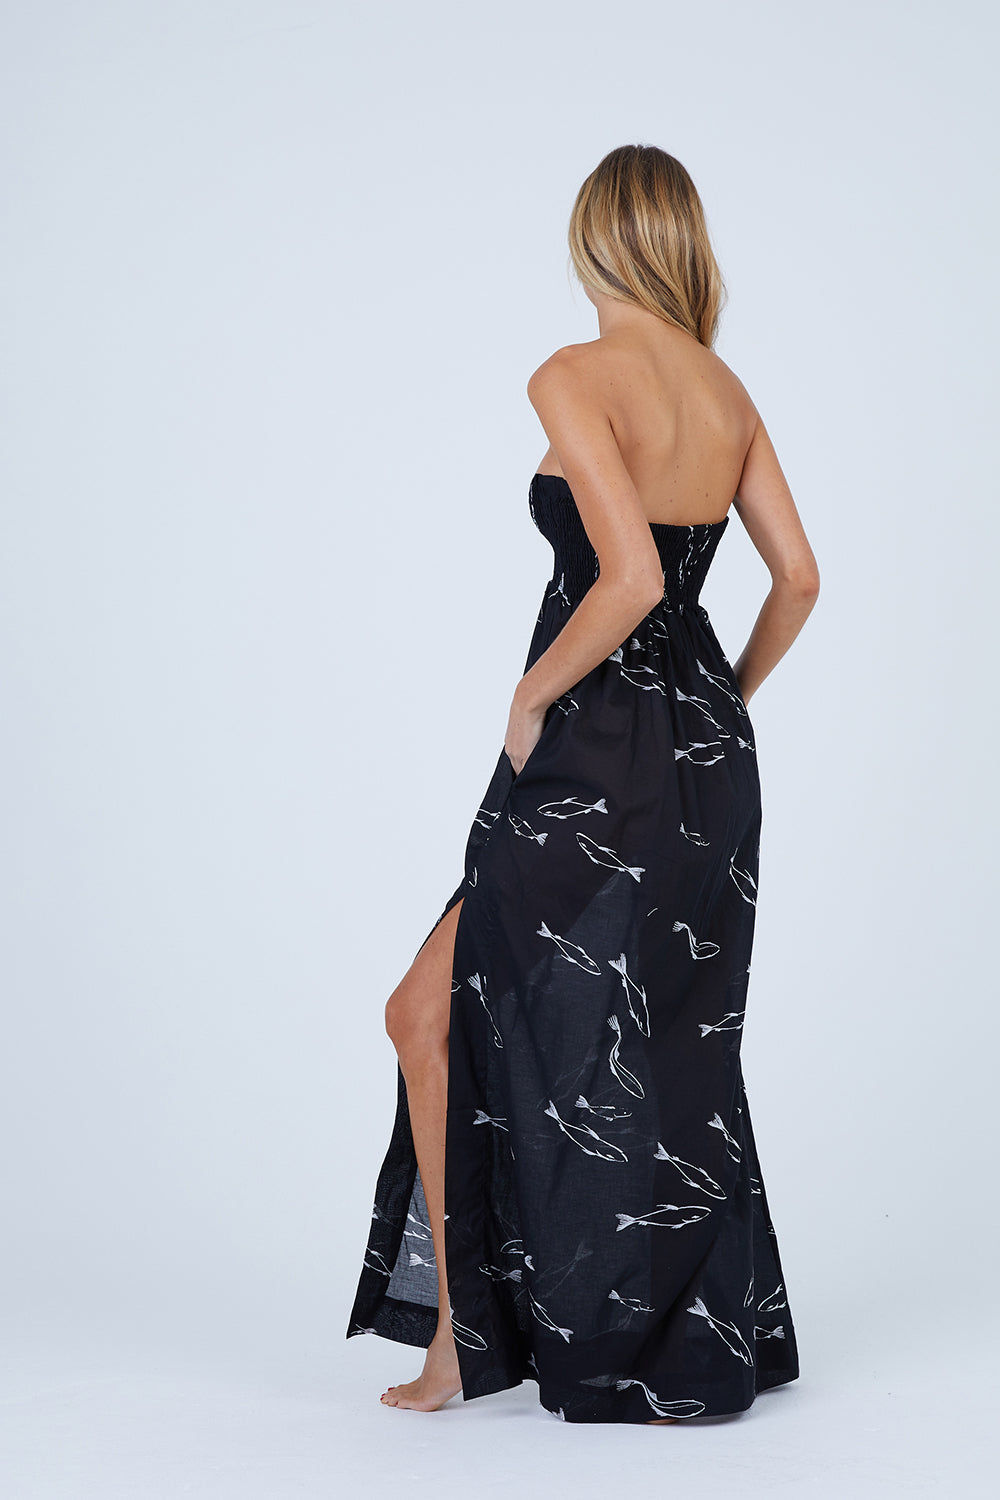 VILEBREQUIN Ficus Strapless Dress - Noir Dress   Noir  Vilebrequin Ficus Strapless Dress - Noir Strapless dress smocked bust  Slit at the right side  2 pockets 100% cotton Front View